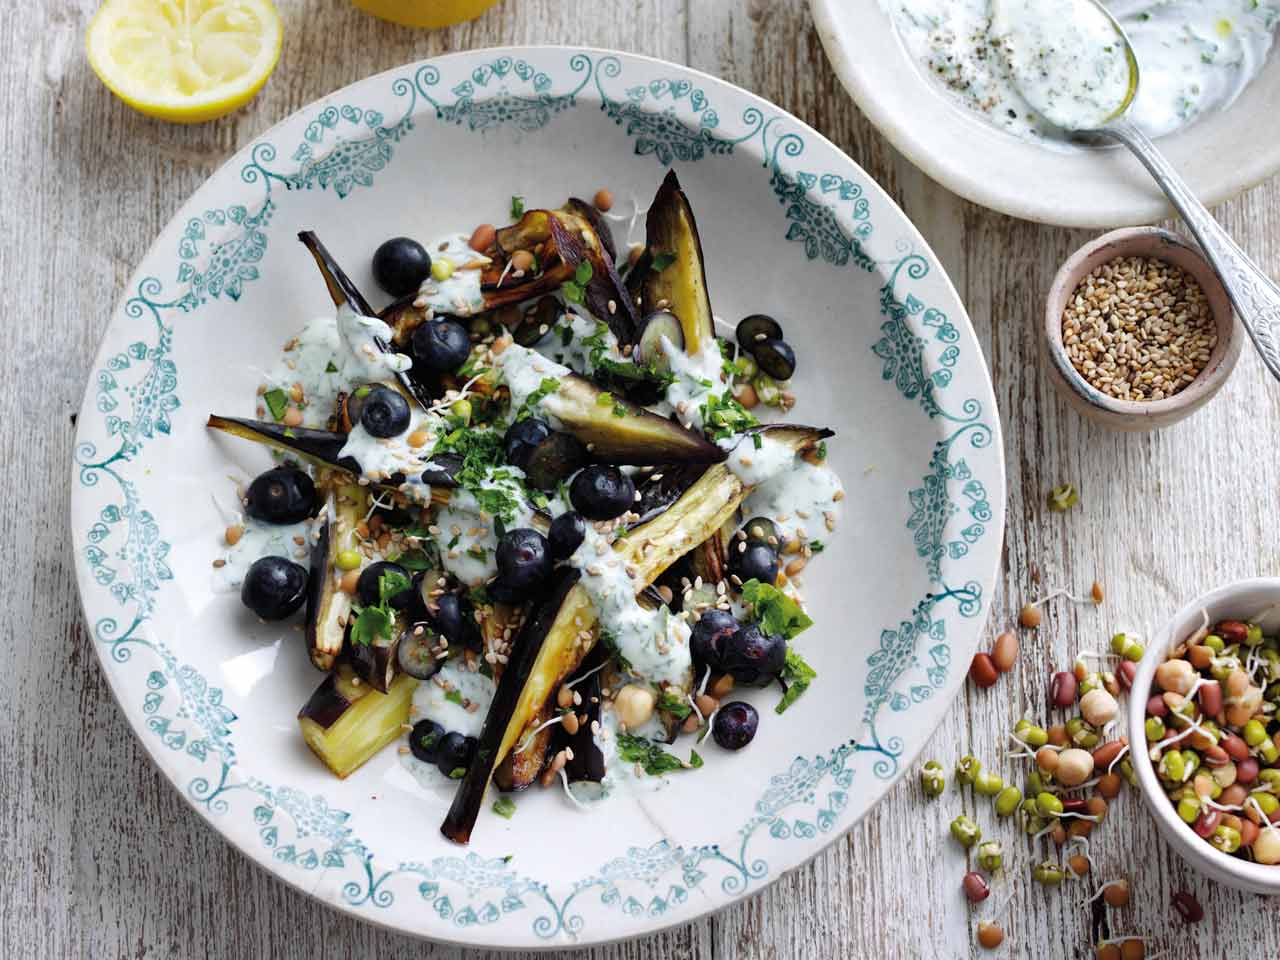 Roast aubergine with yoghurt, sliced blueberries and parsley